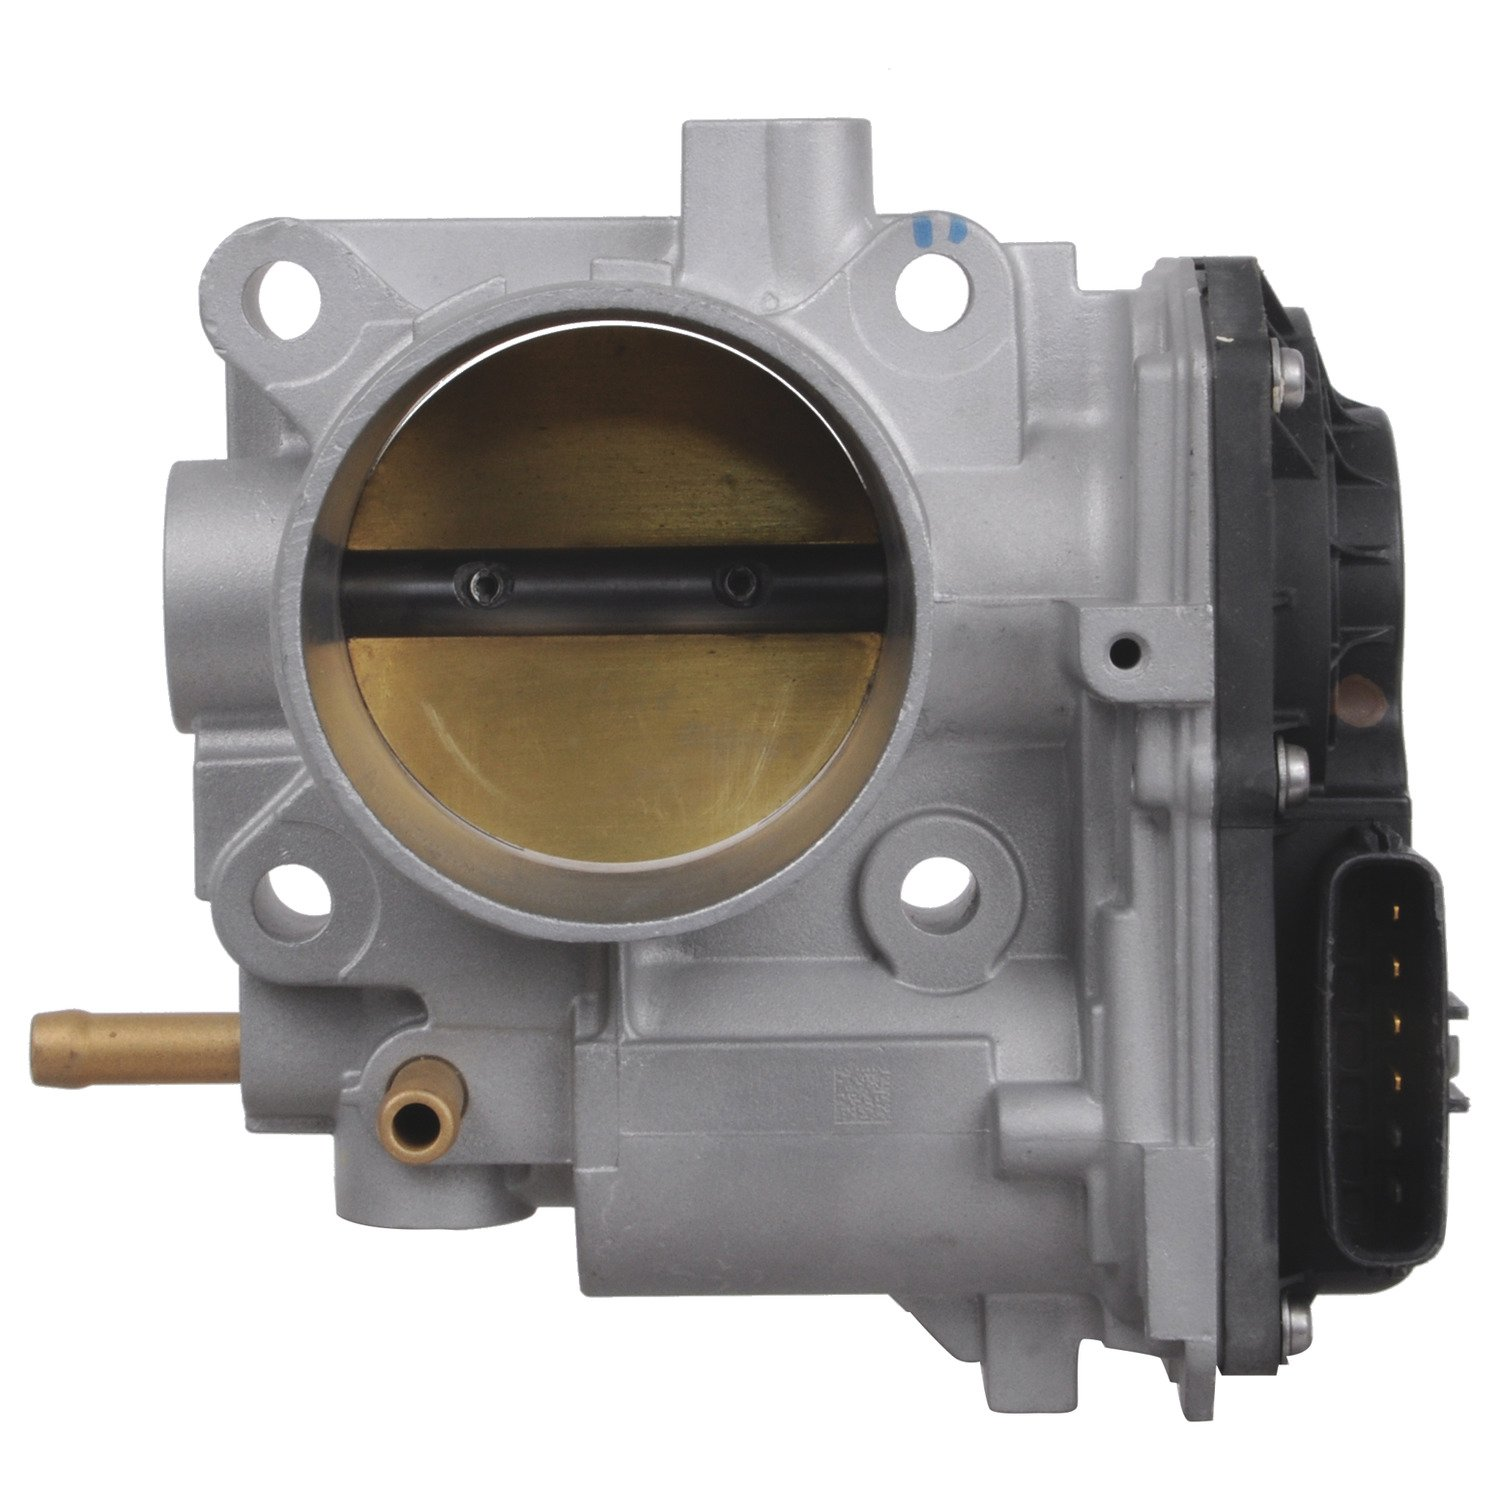 A1 Cardone 67-2010 Remanufactured Throttle Body